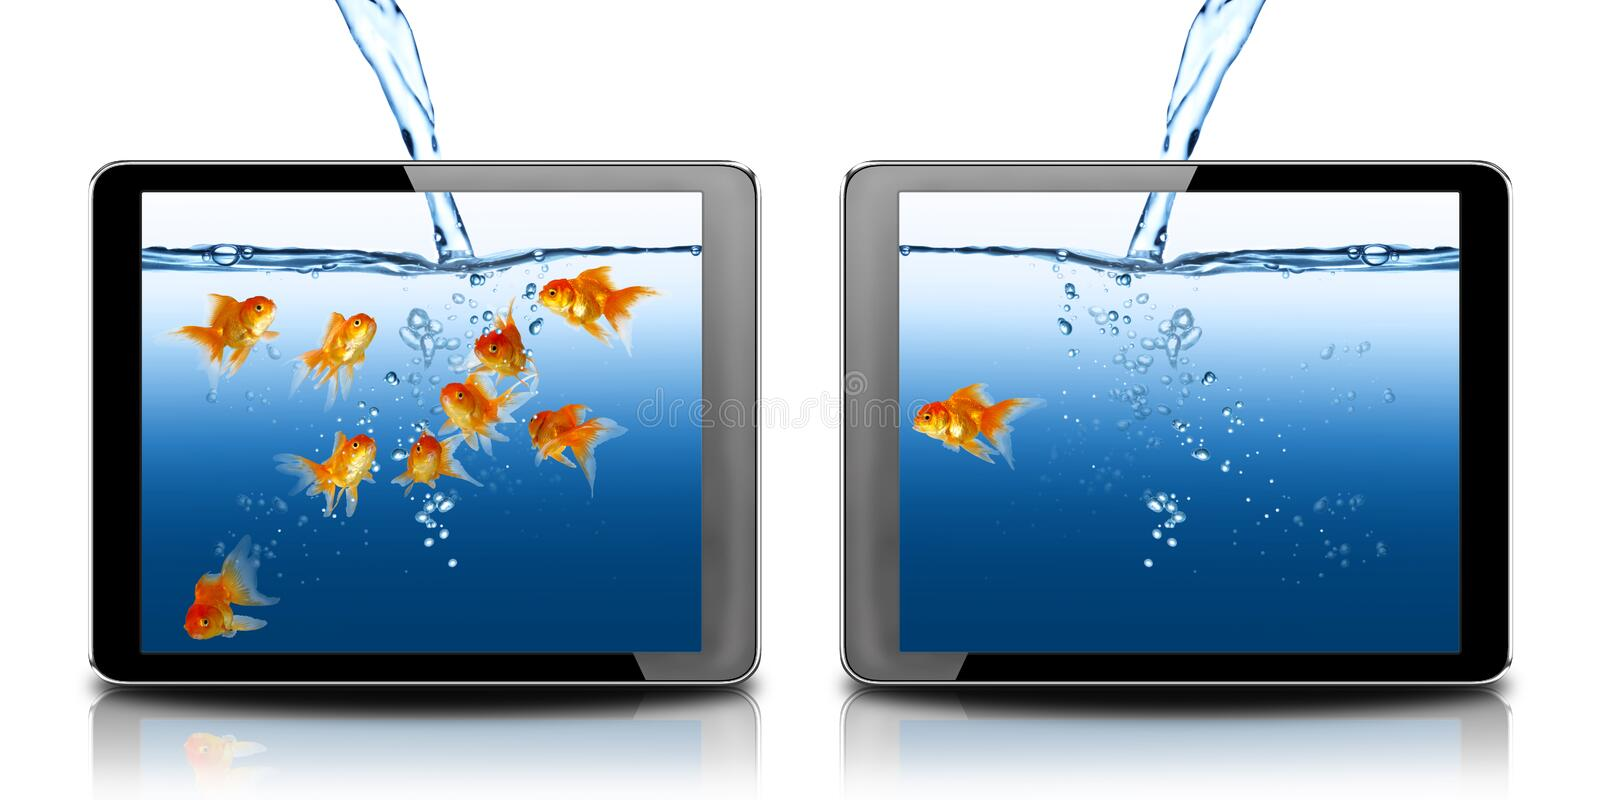 Gold Fish In Tablet Computer Pc Stock Photography